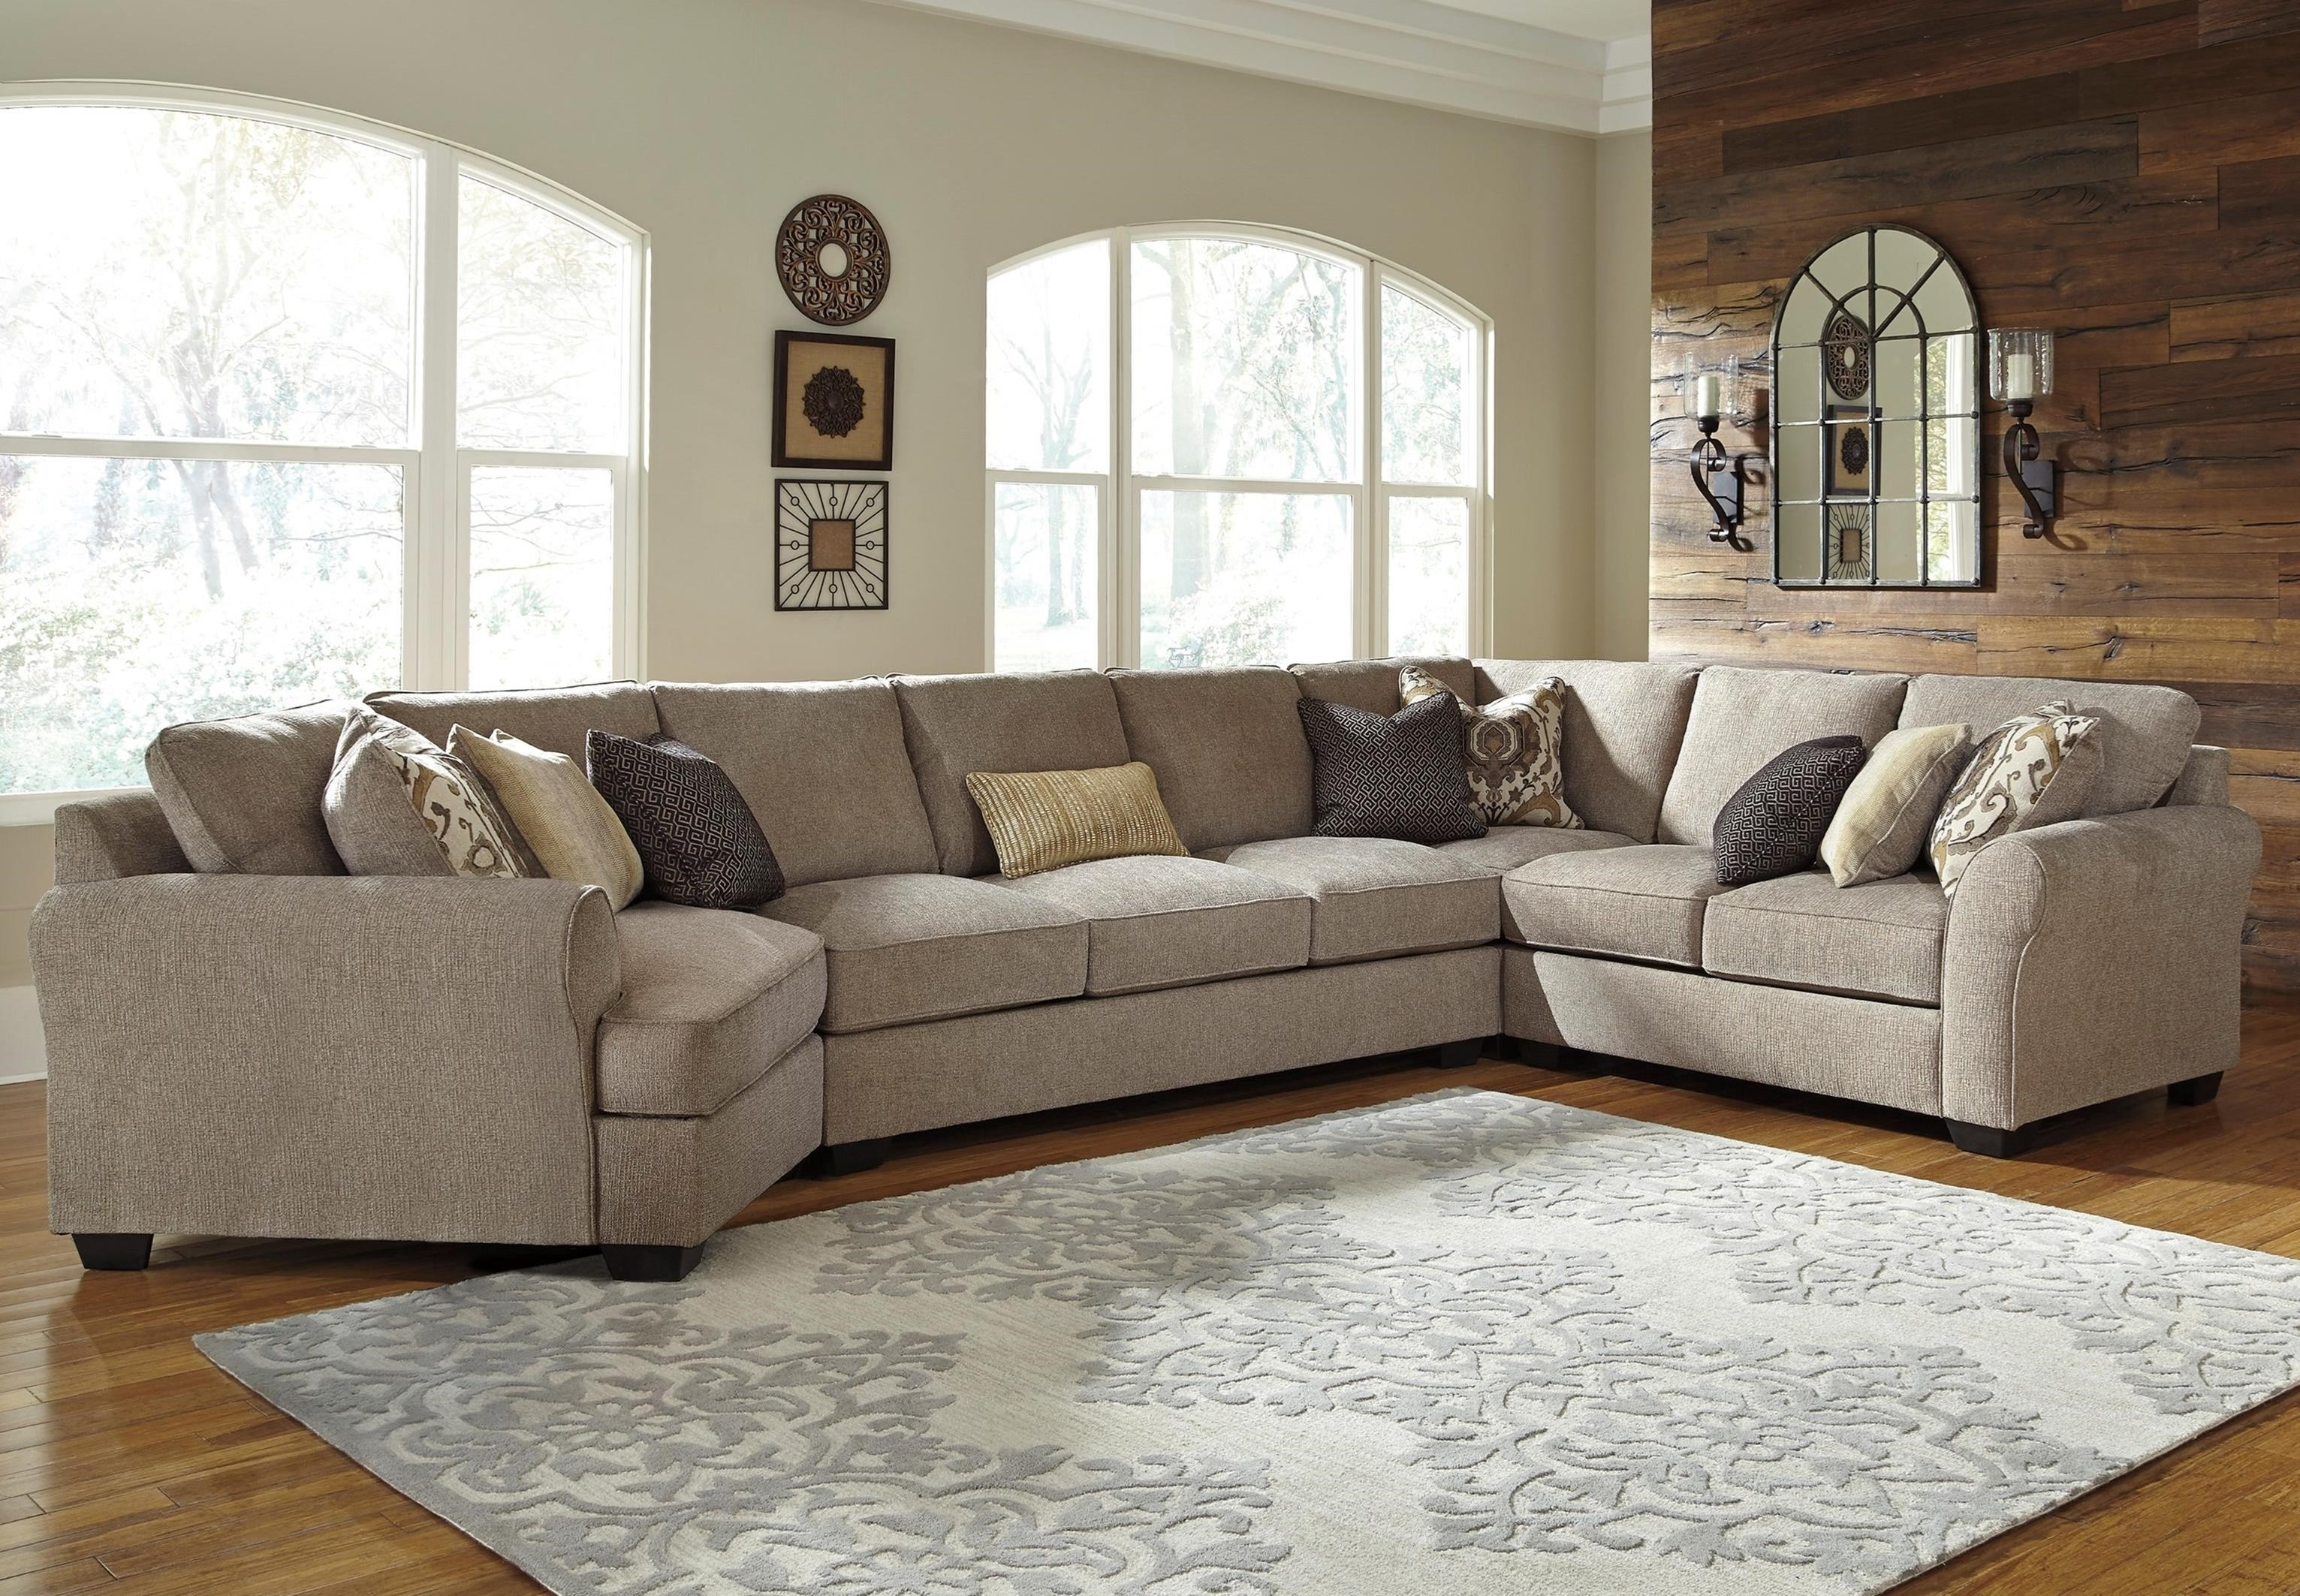 Benchcraft Pantomine 4 Piece Sectional With Left Cuddler & Armless Regarding Sectional Sofas With Cuddler (View 4 of 10)